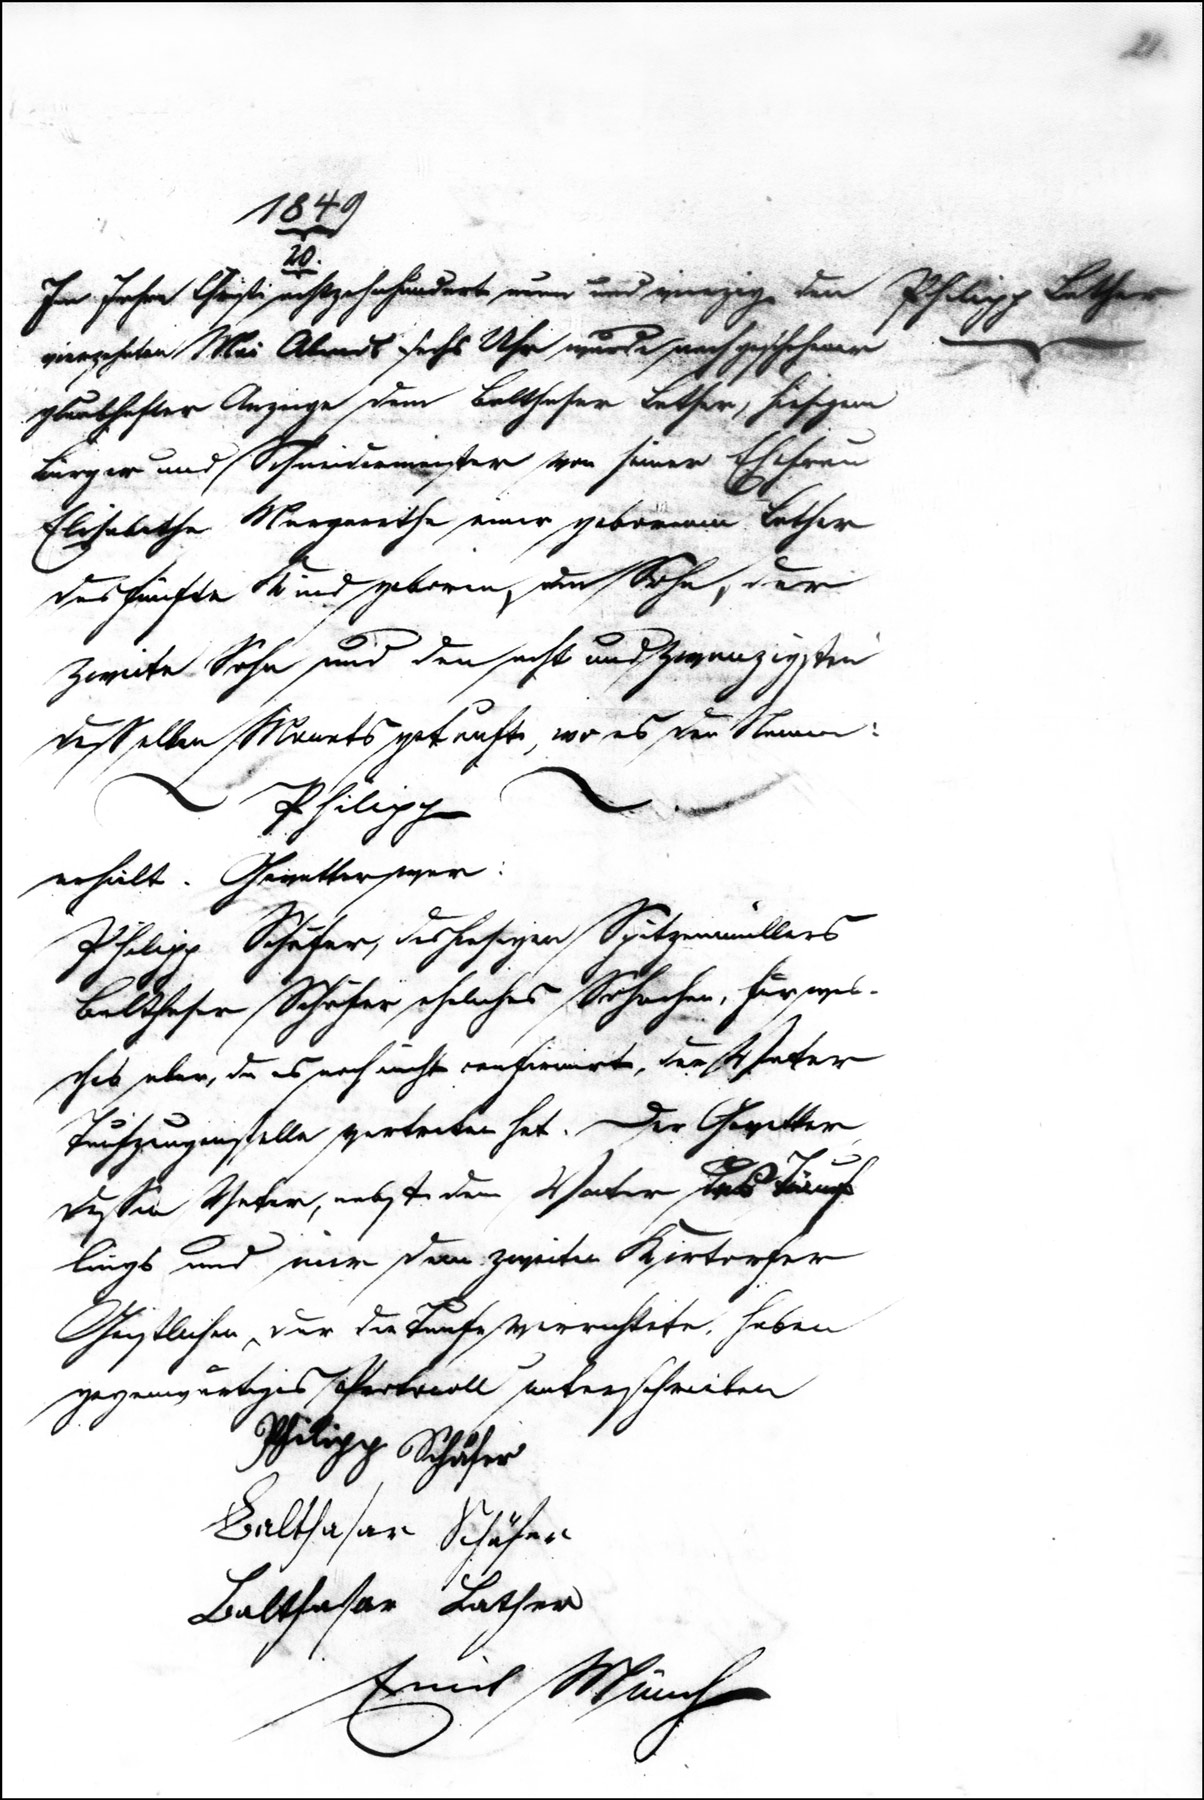 The Birth and Baptismal Record of Philipp Lather - 1849